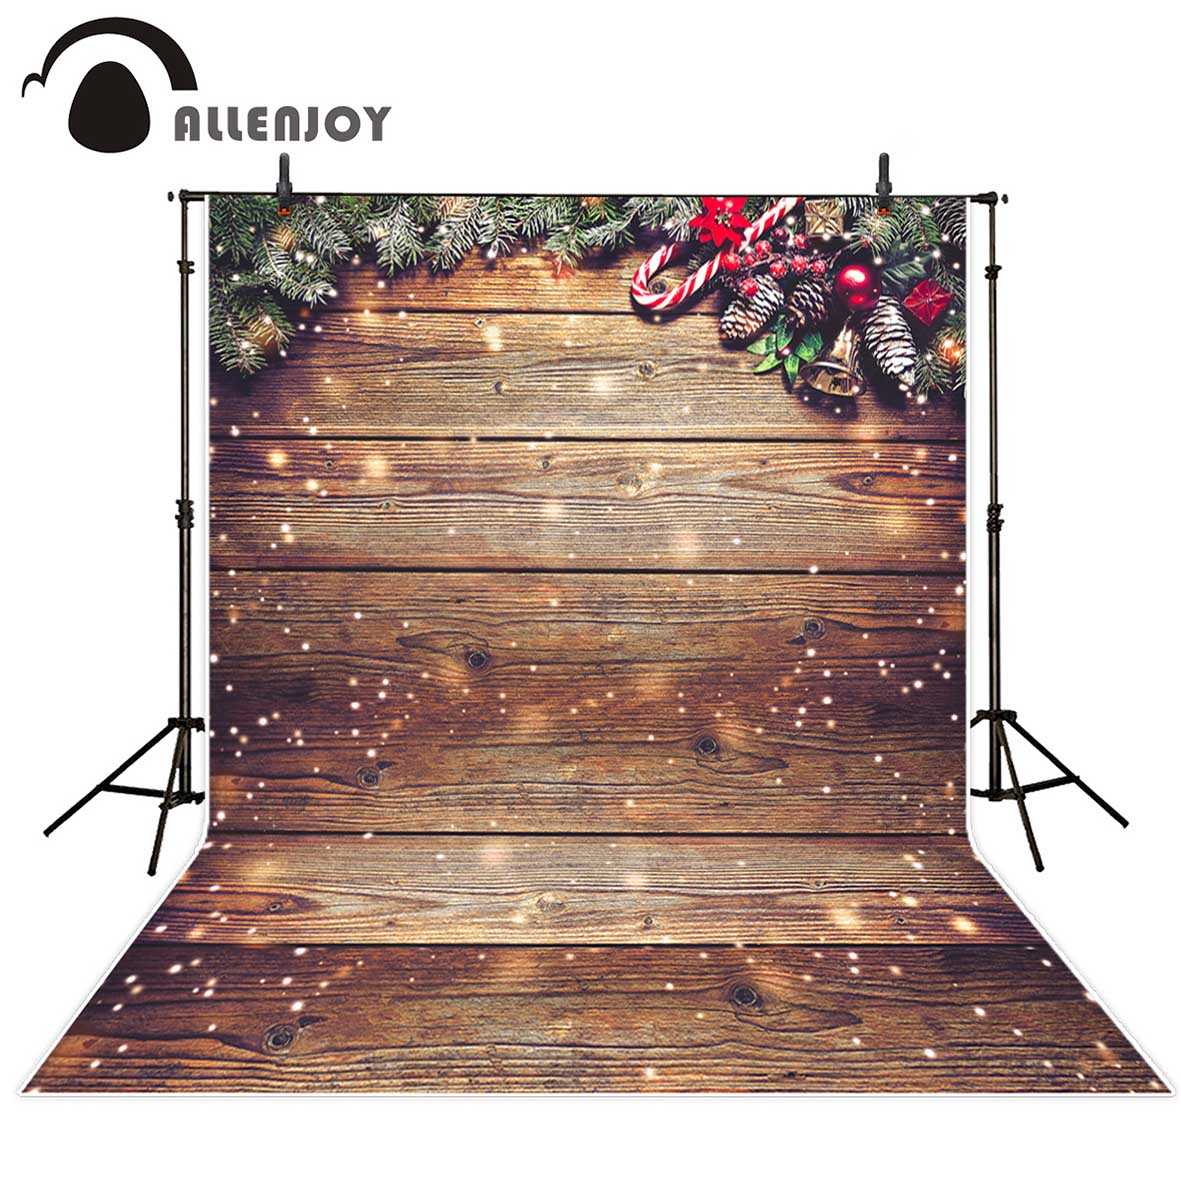 Allenjoy new photography background Christmas bokeh wood crutch leaves backdrop photocall photographic professional christmas background for photography wood flower green yellow rose colorful new born xmas customize photocall